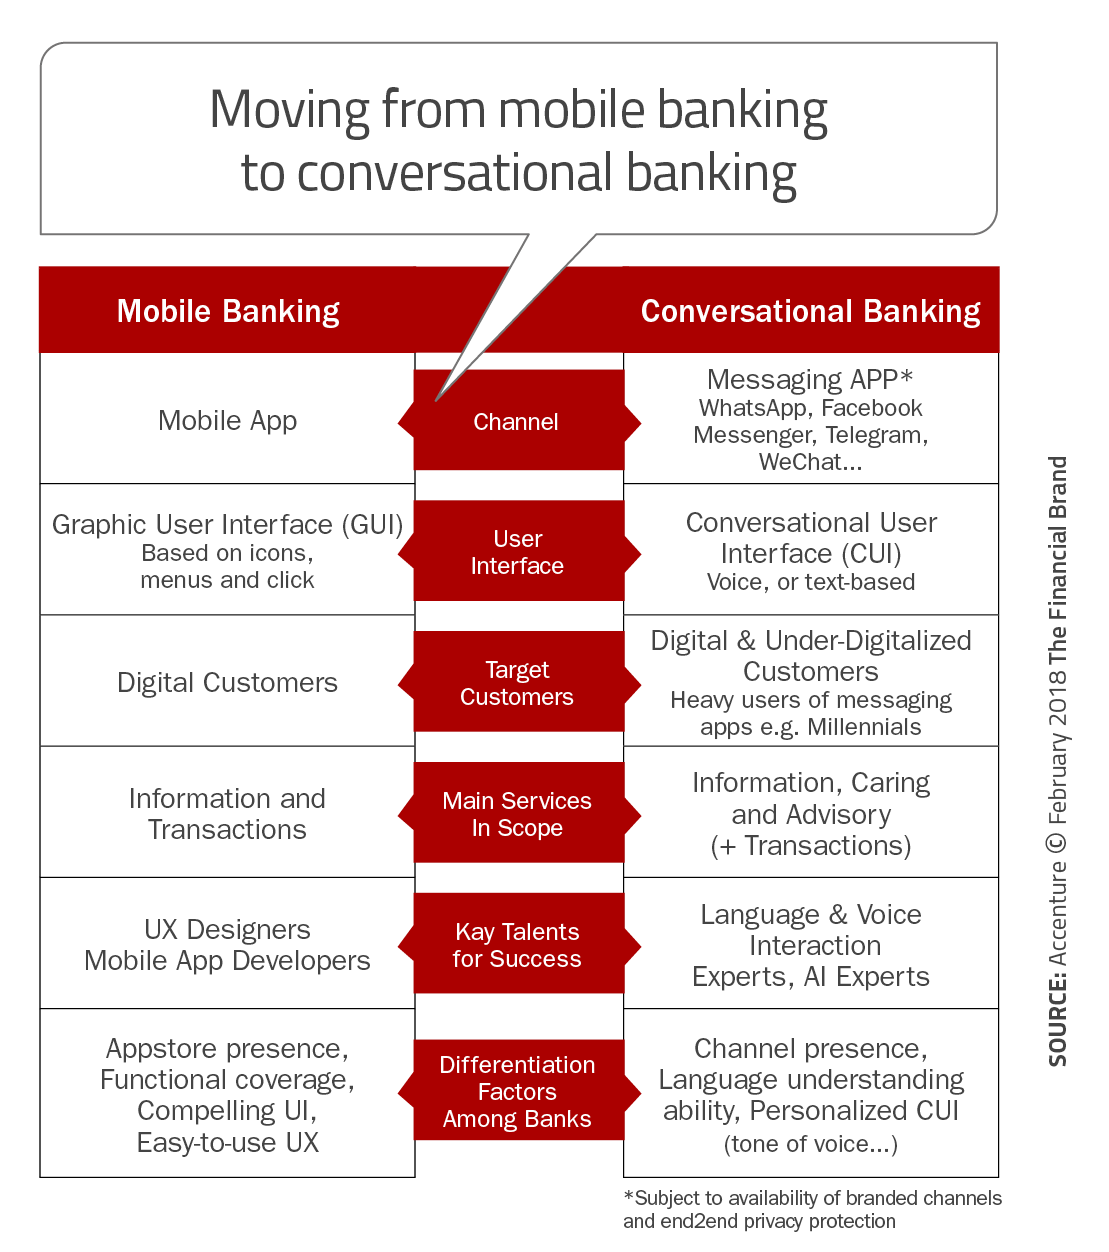 8 Technology Trends the Banking Industry Must Act On In 2019